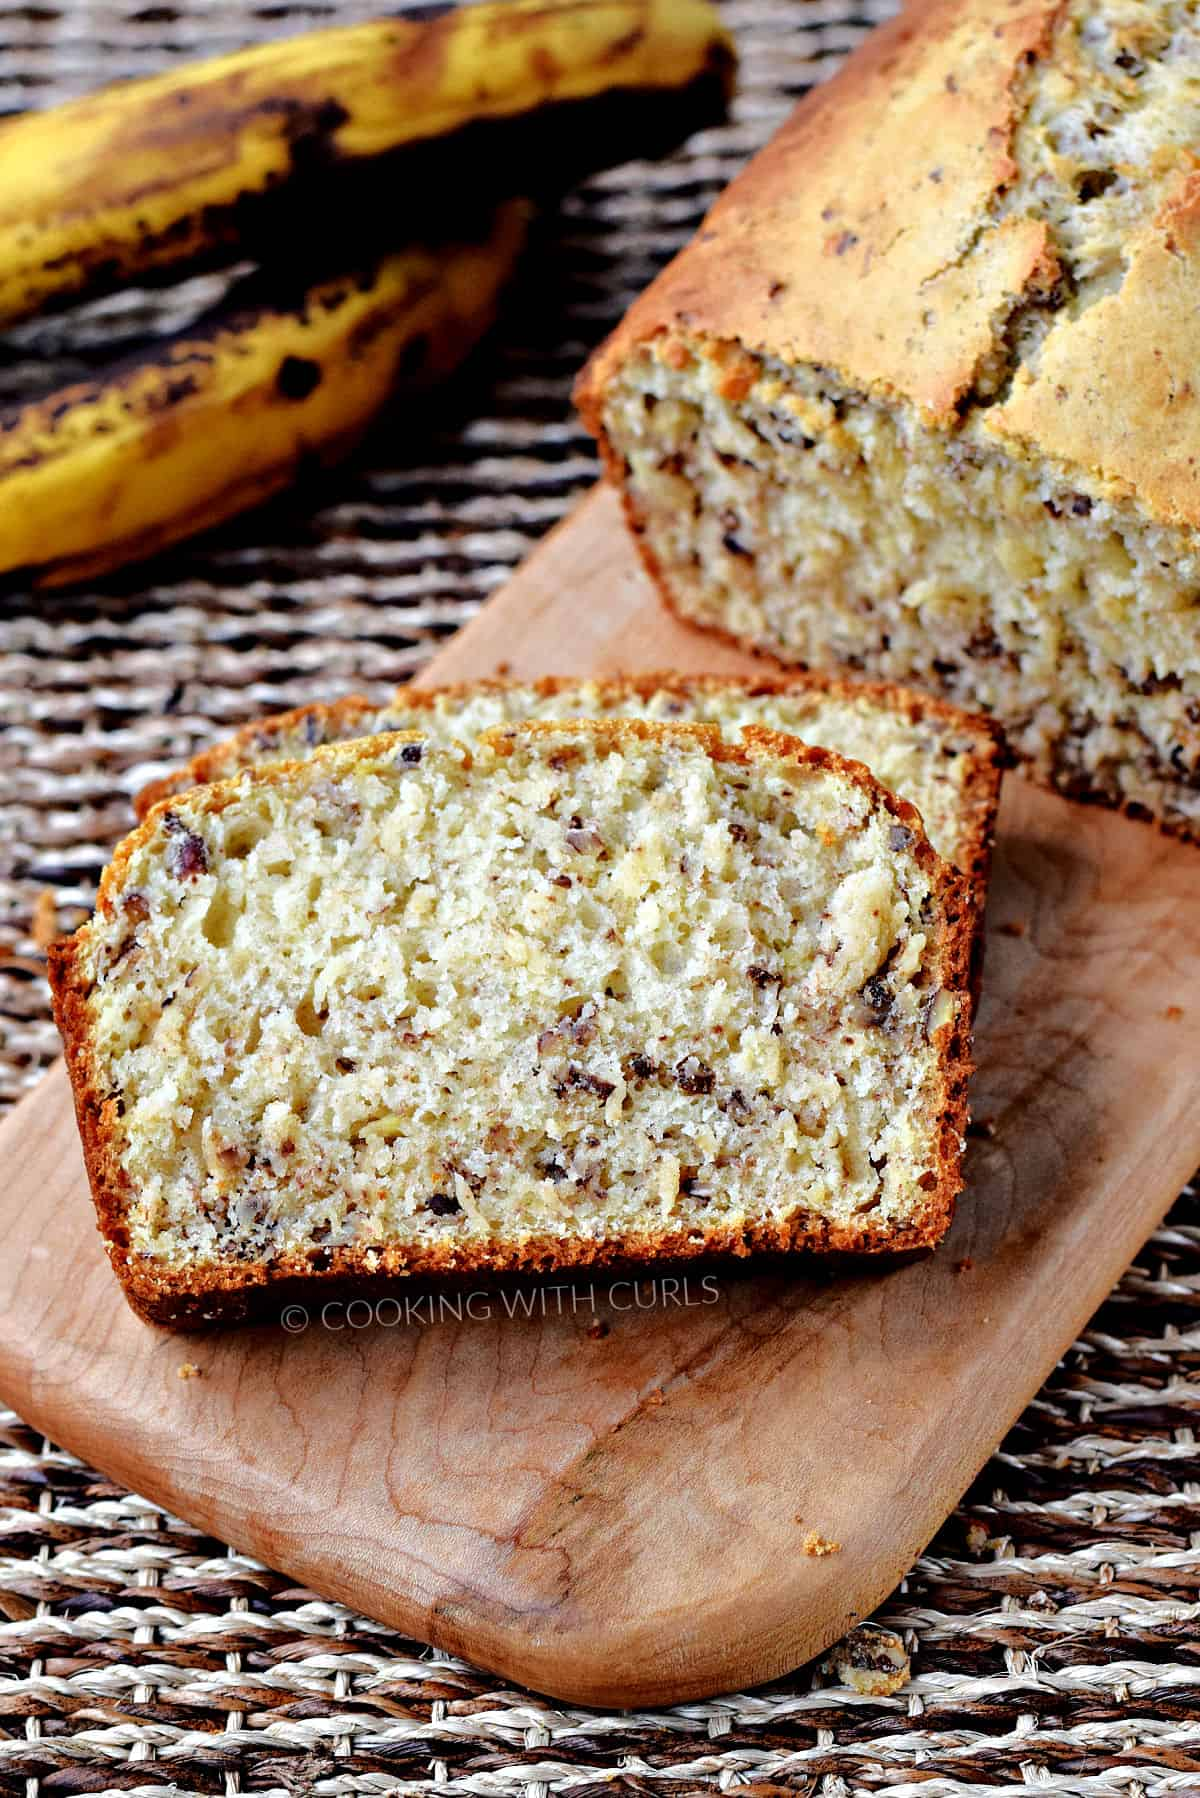 Two slices of banana nut bread on a board with the remaining loaf in the background and ripe bananas off to the side.